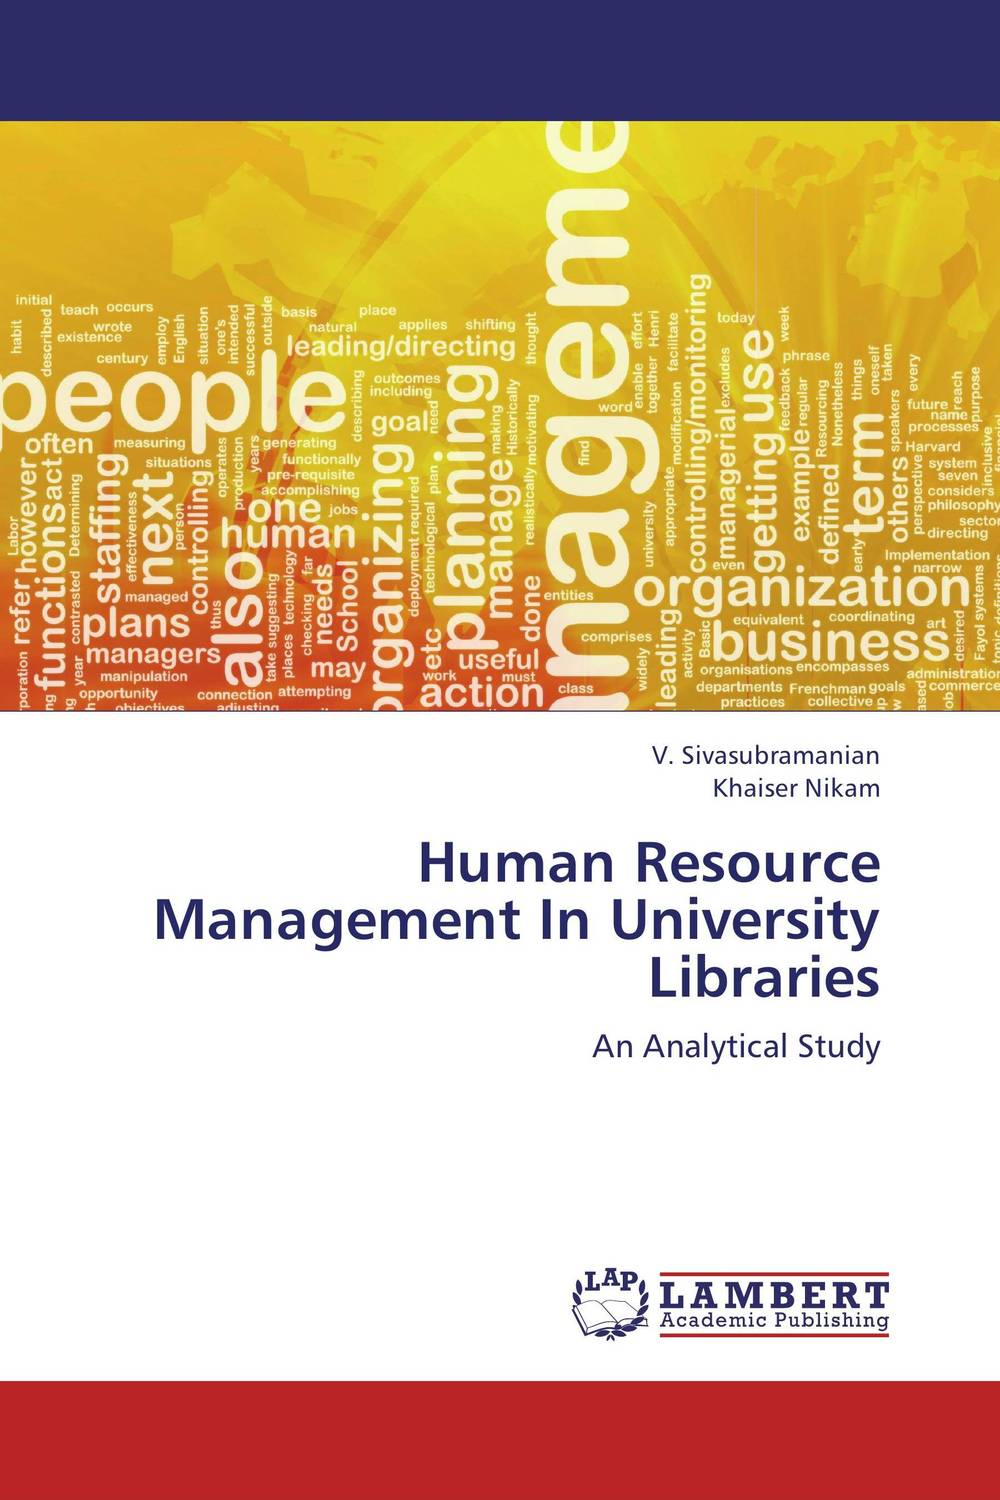 Human Resource Management In University Libraries public relations science management